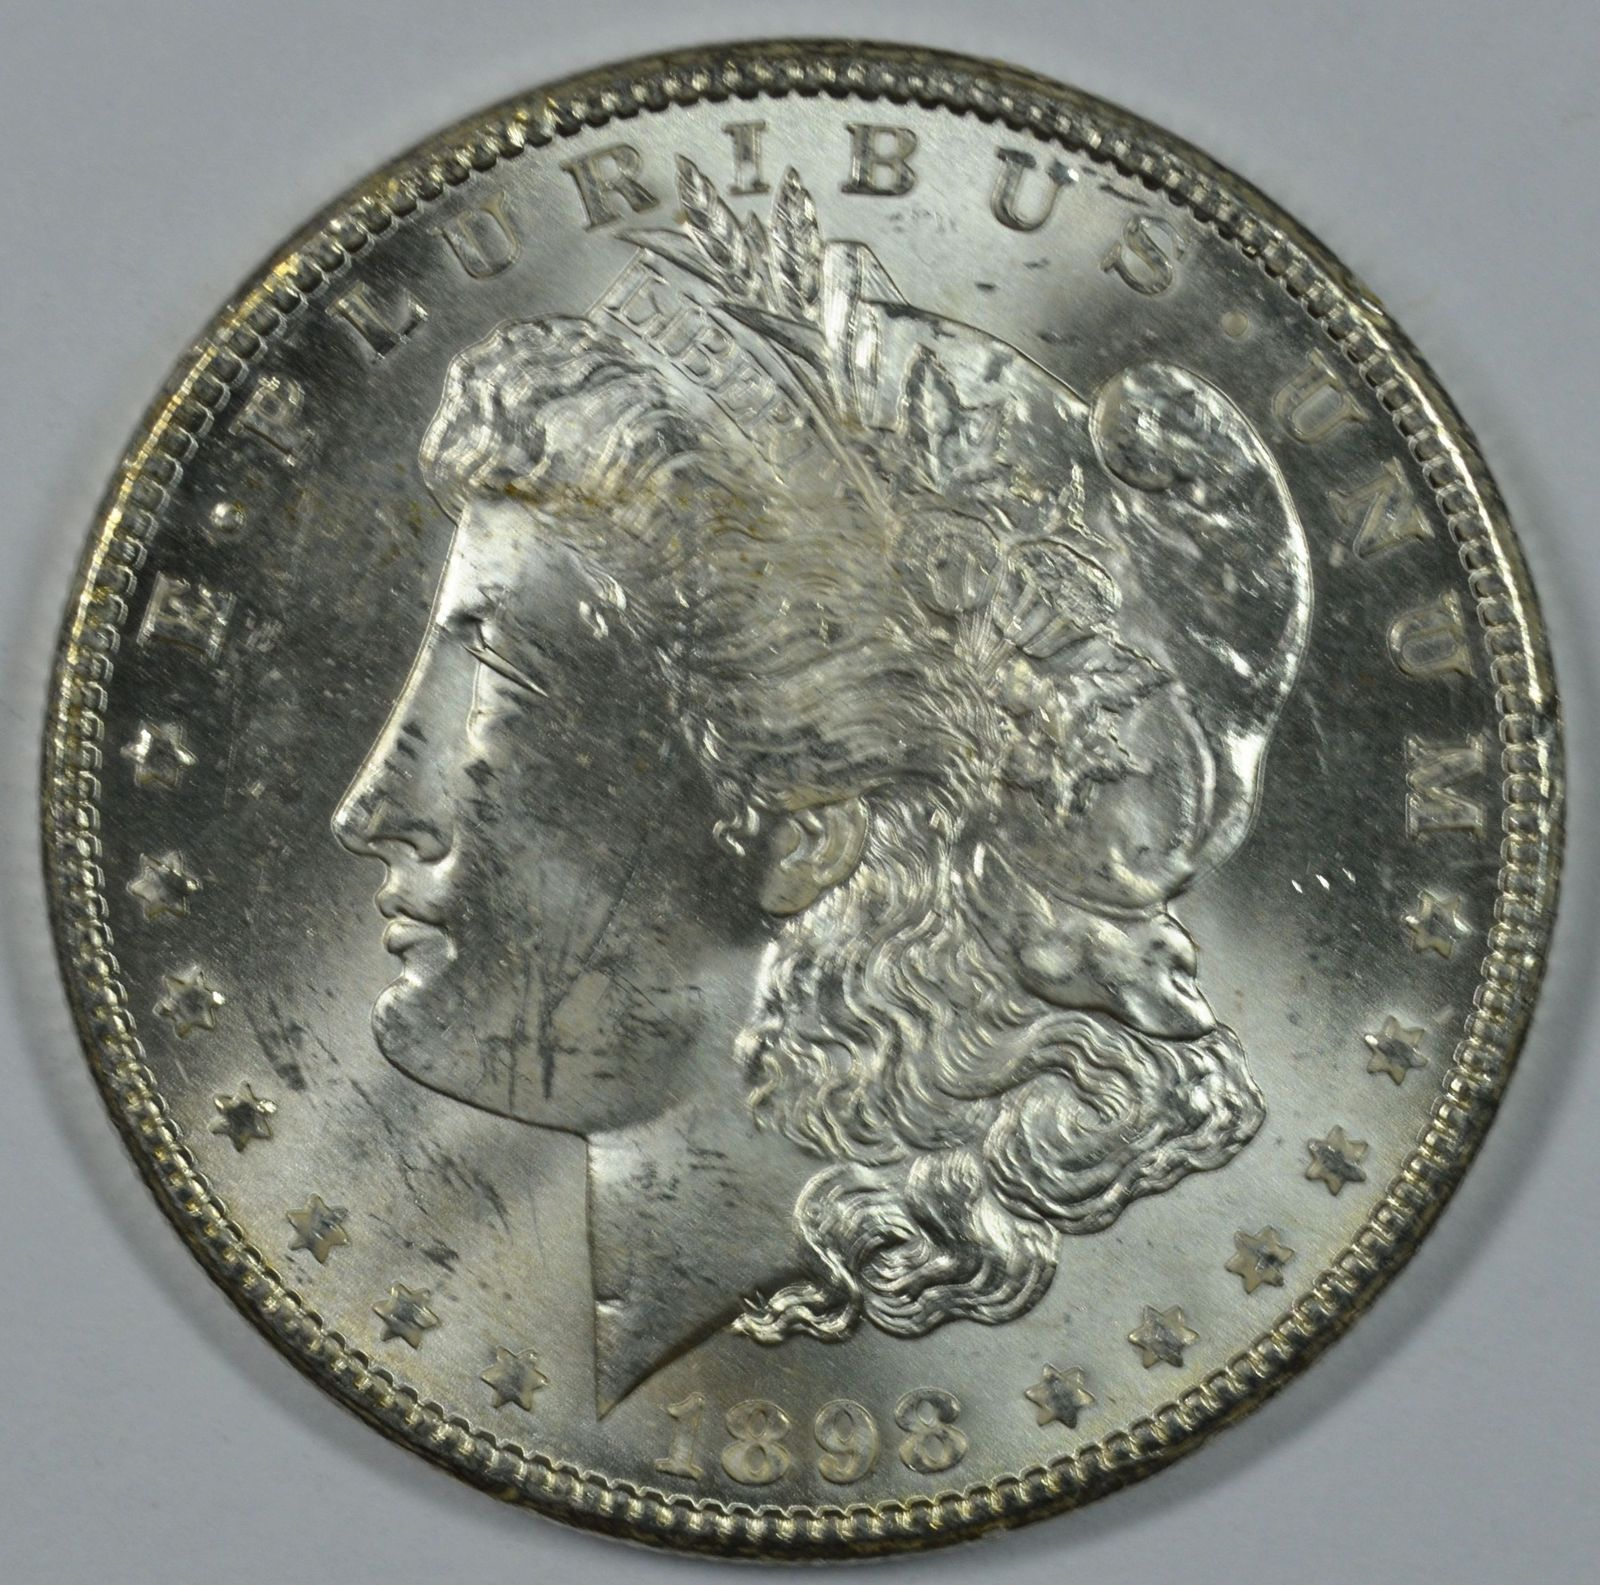 Primary image for 1898 O Morgan silver dollar AU details